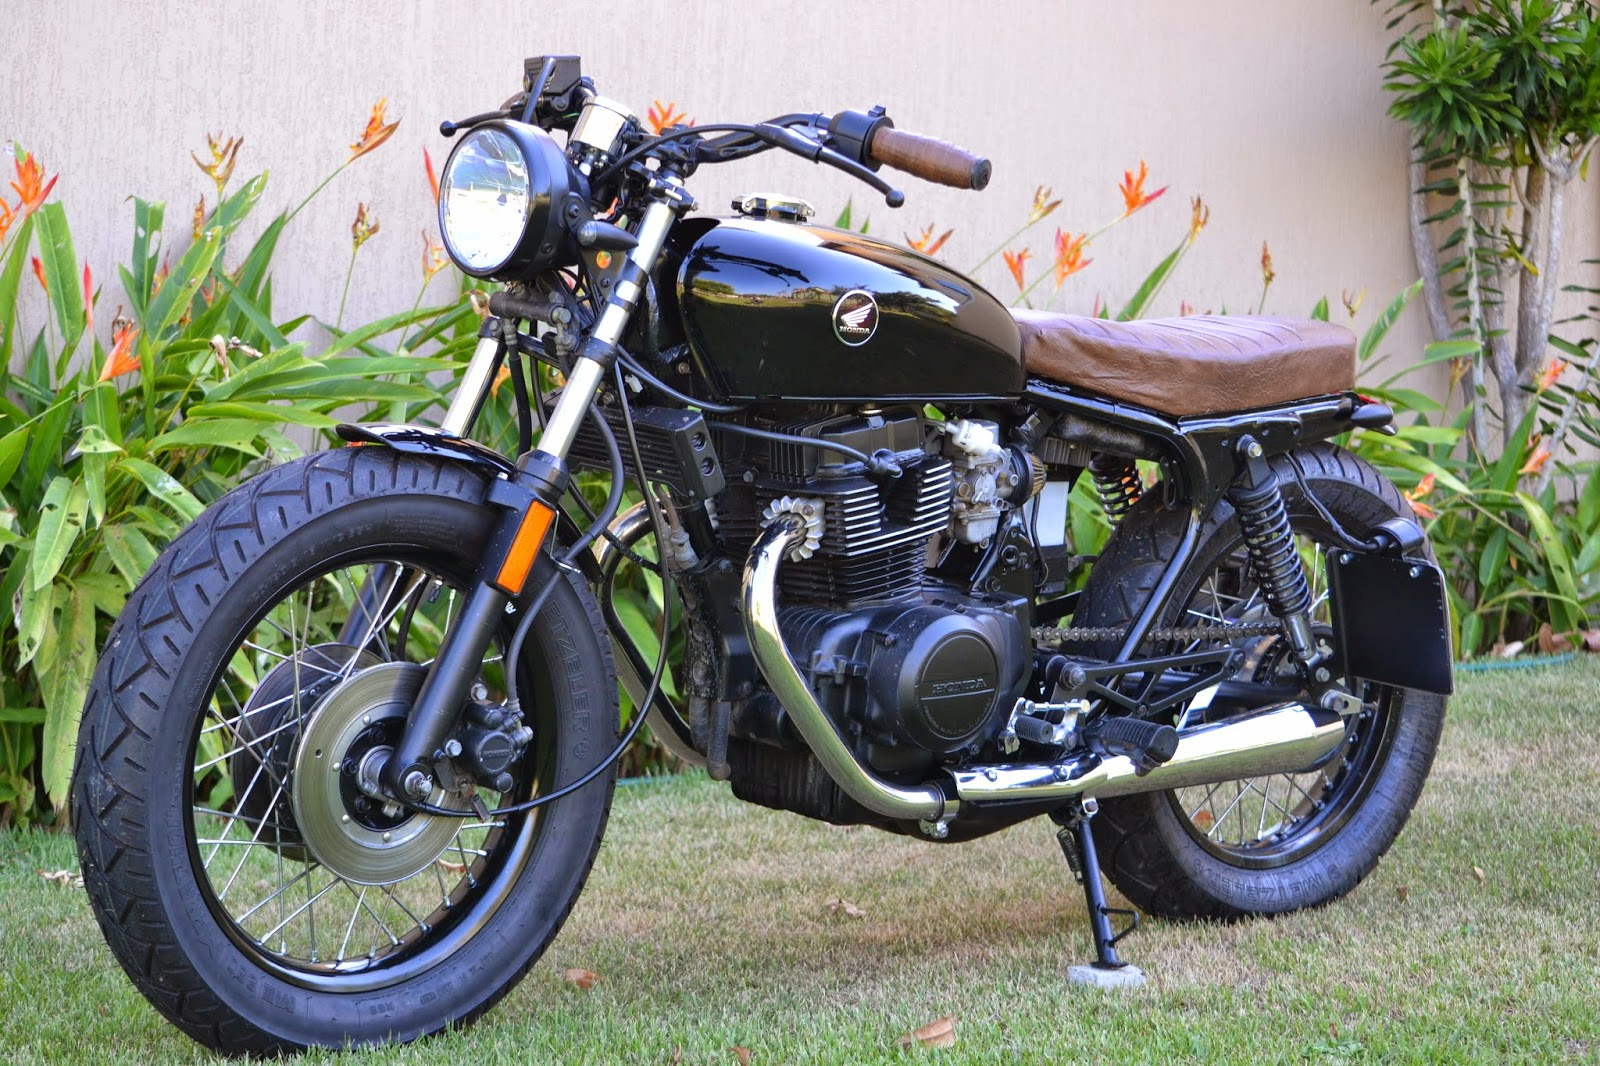 Cafe Racer Cb 450 Ide Dimage De Moto Bike Wiring Diagram Cb450 Street Tracker Free Image About